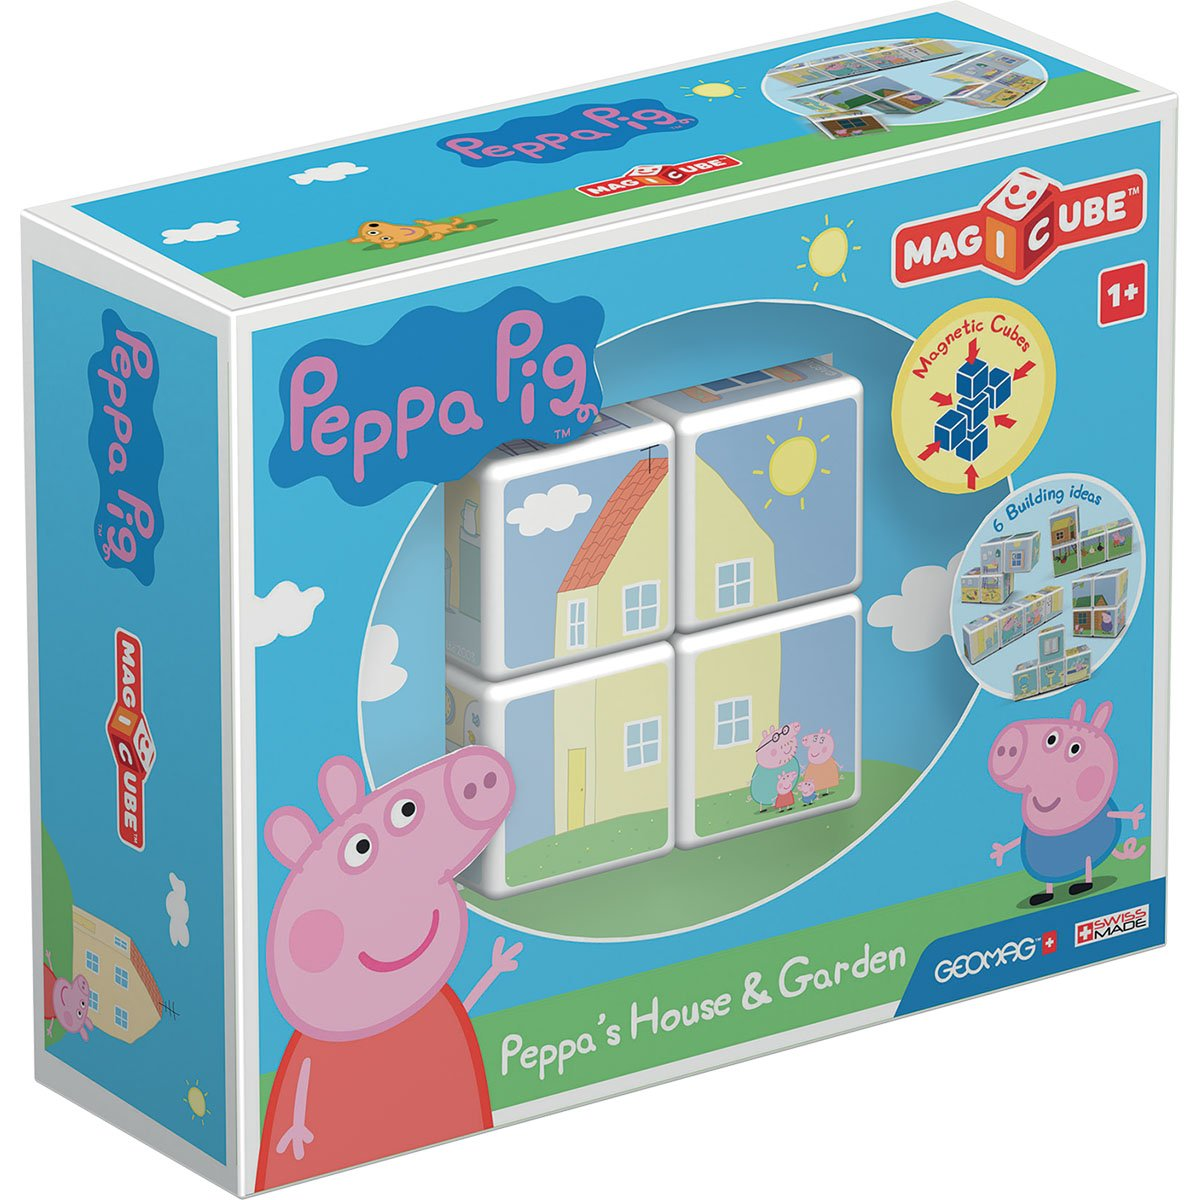 Joc de constructie magnetic Magic Cube, Peppa Pig House